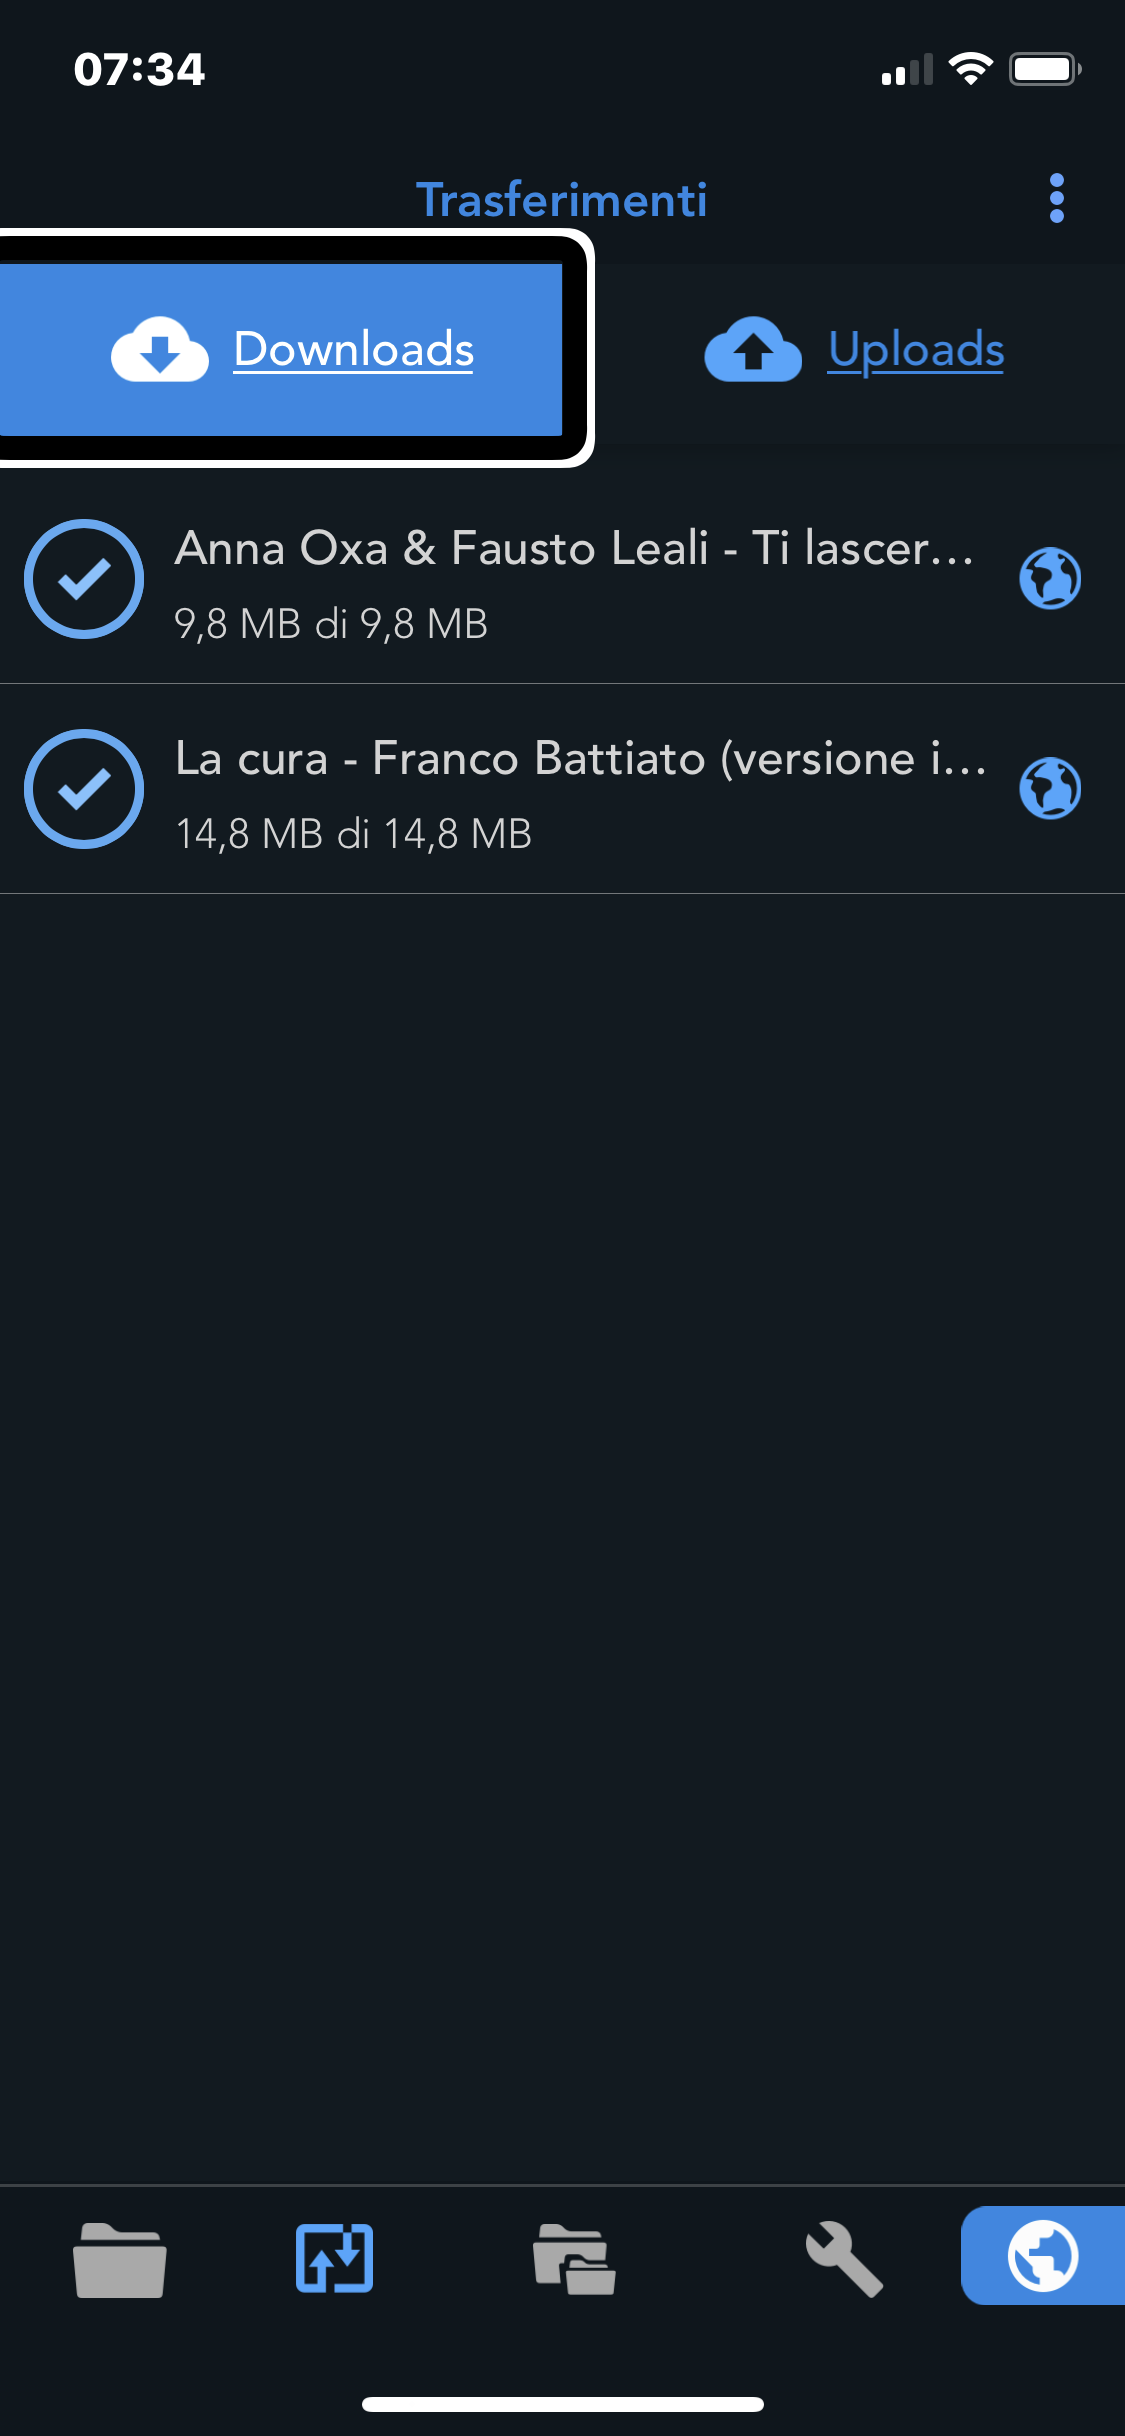 screenshot di un iPhone con in primo piano l'app Total file